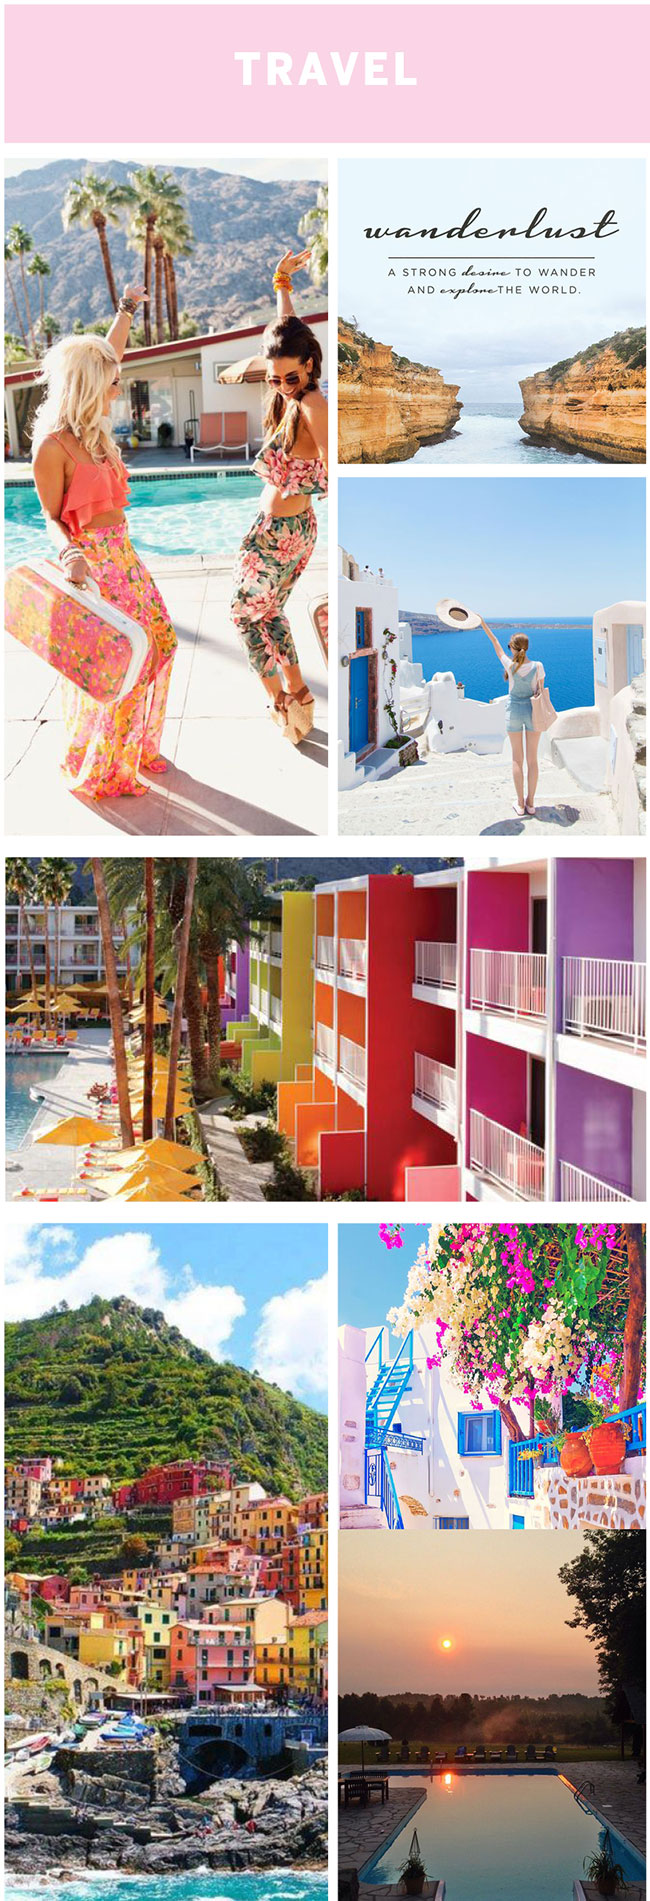 Creating a vision board - travel: by The Sweet Escape